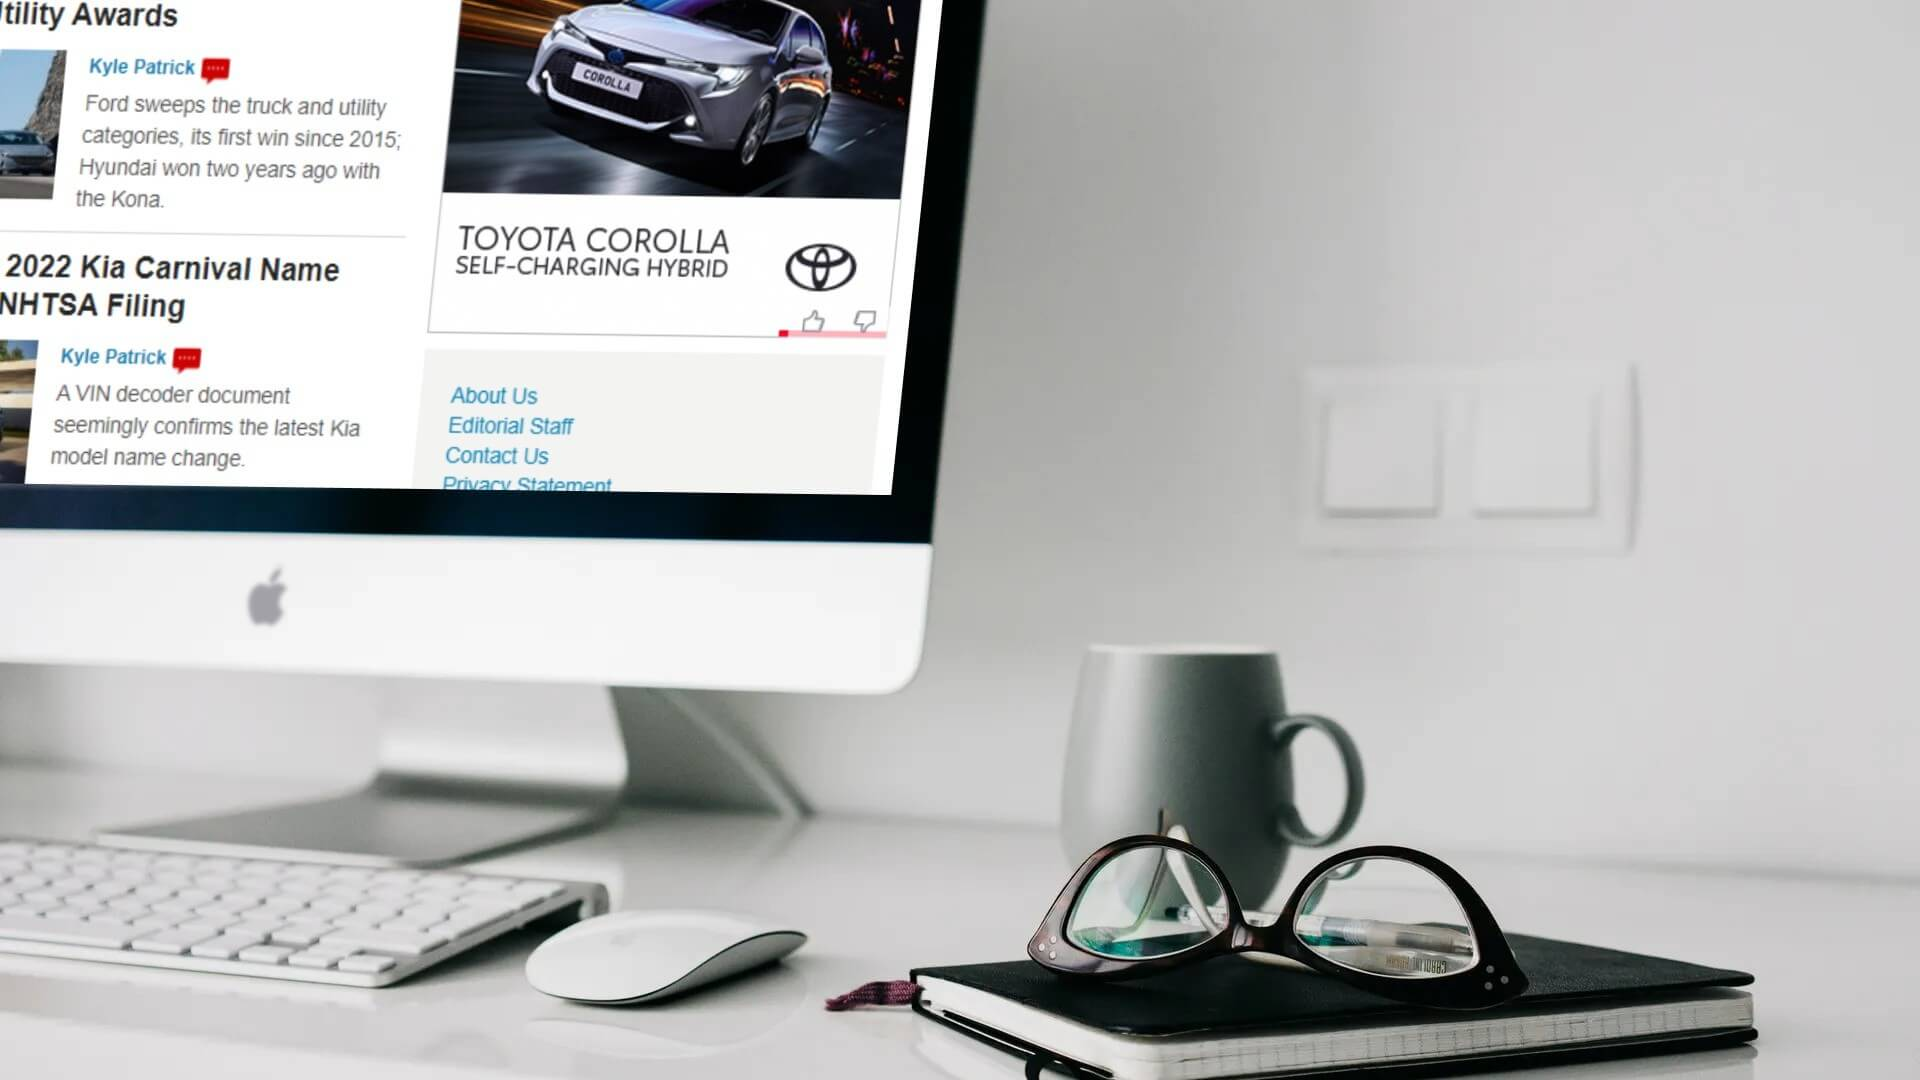 cookieless future - retargeting toyota